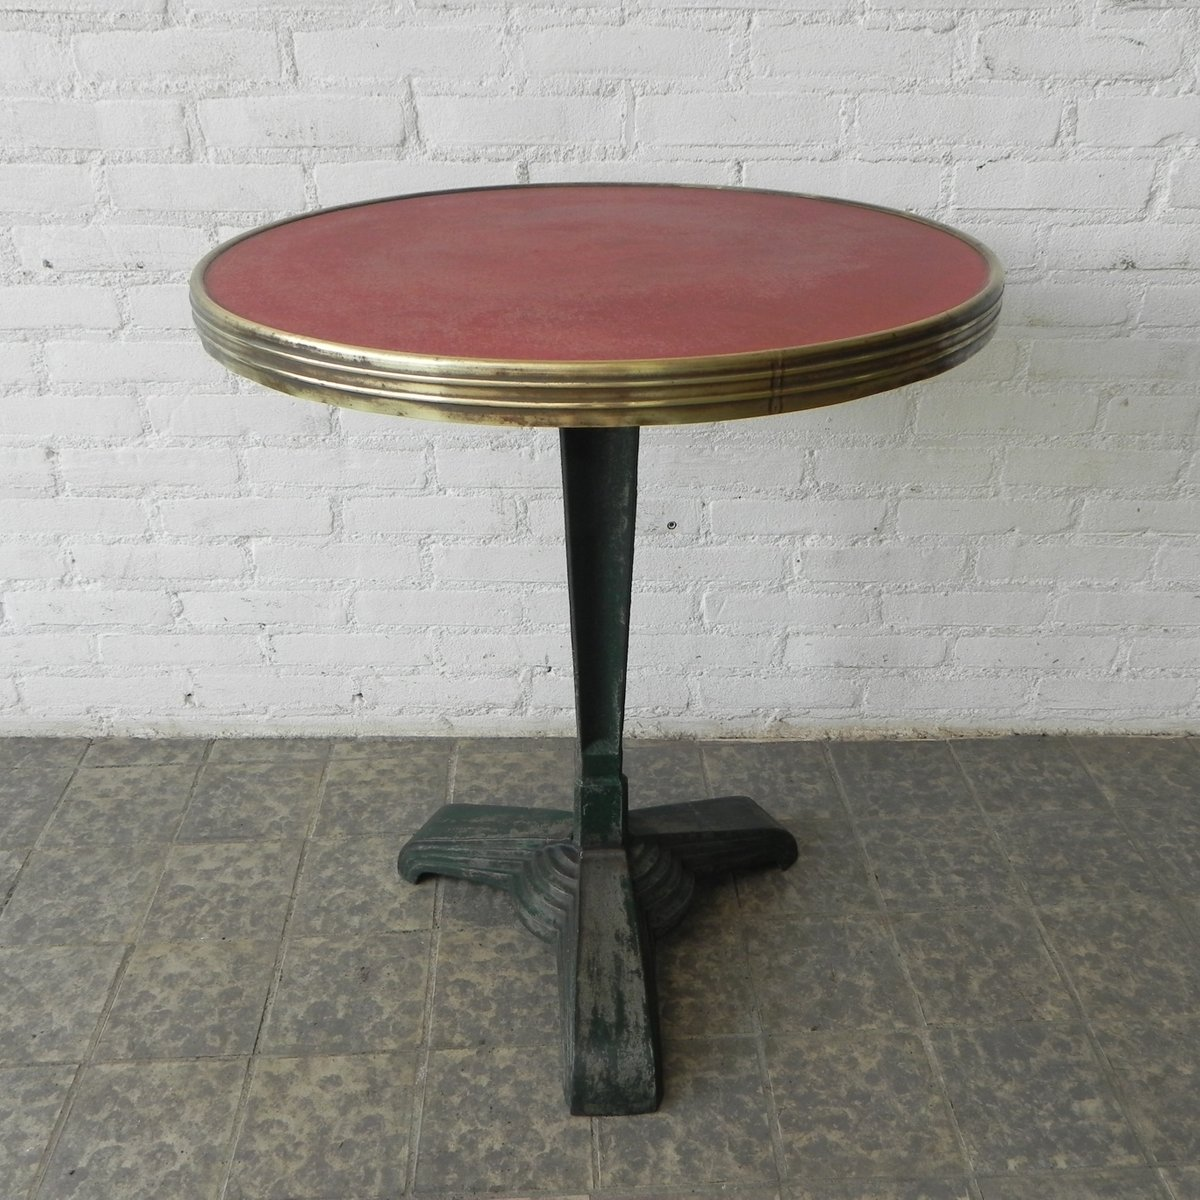 Art deco bistro table with cast iron base for sale at pamono - Table de bistrot occasion ...